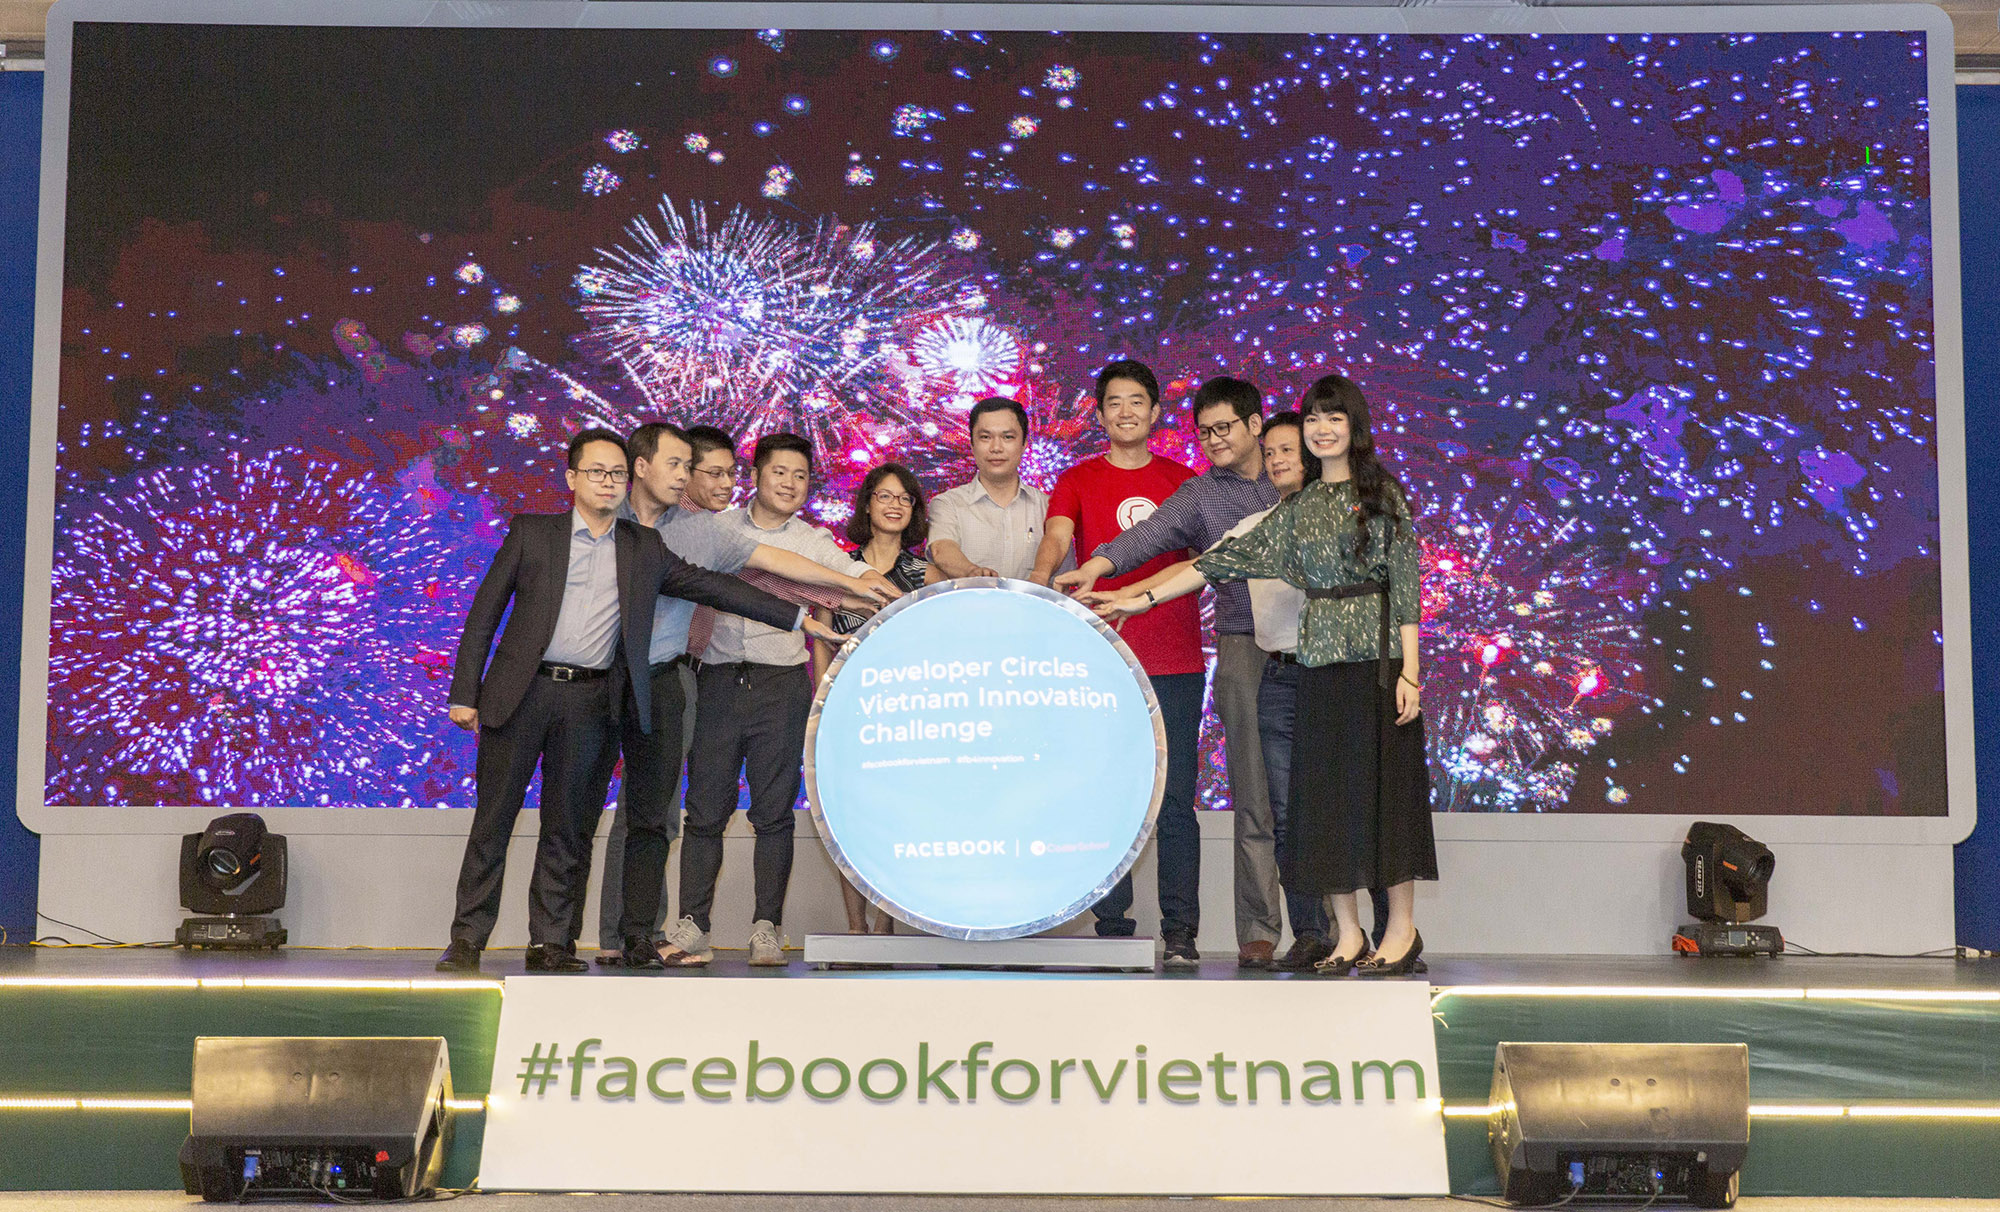 Facebook extends 'Developer Circles Vietnam Innovation Challenge' to Hanoi, continues to train 300 more students